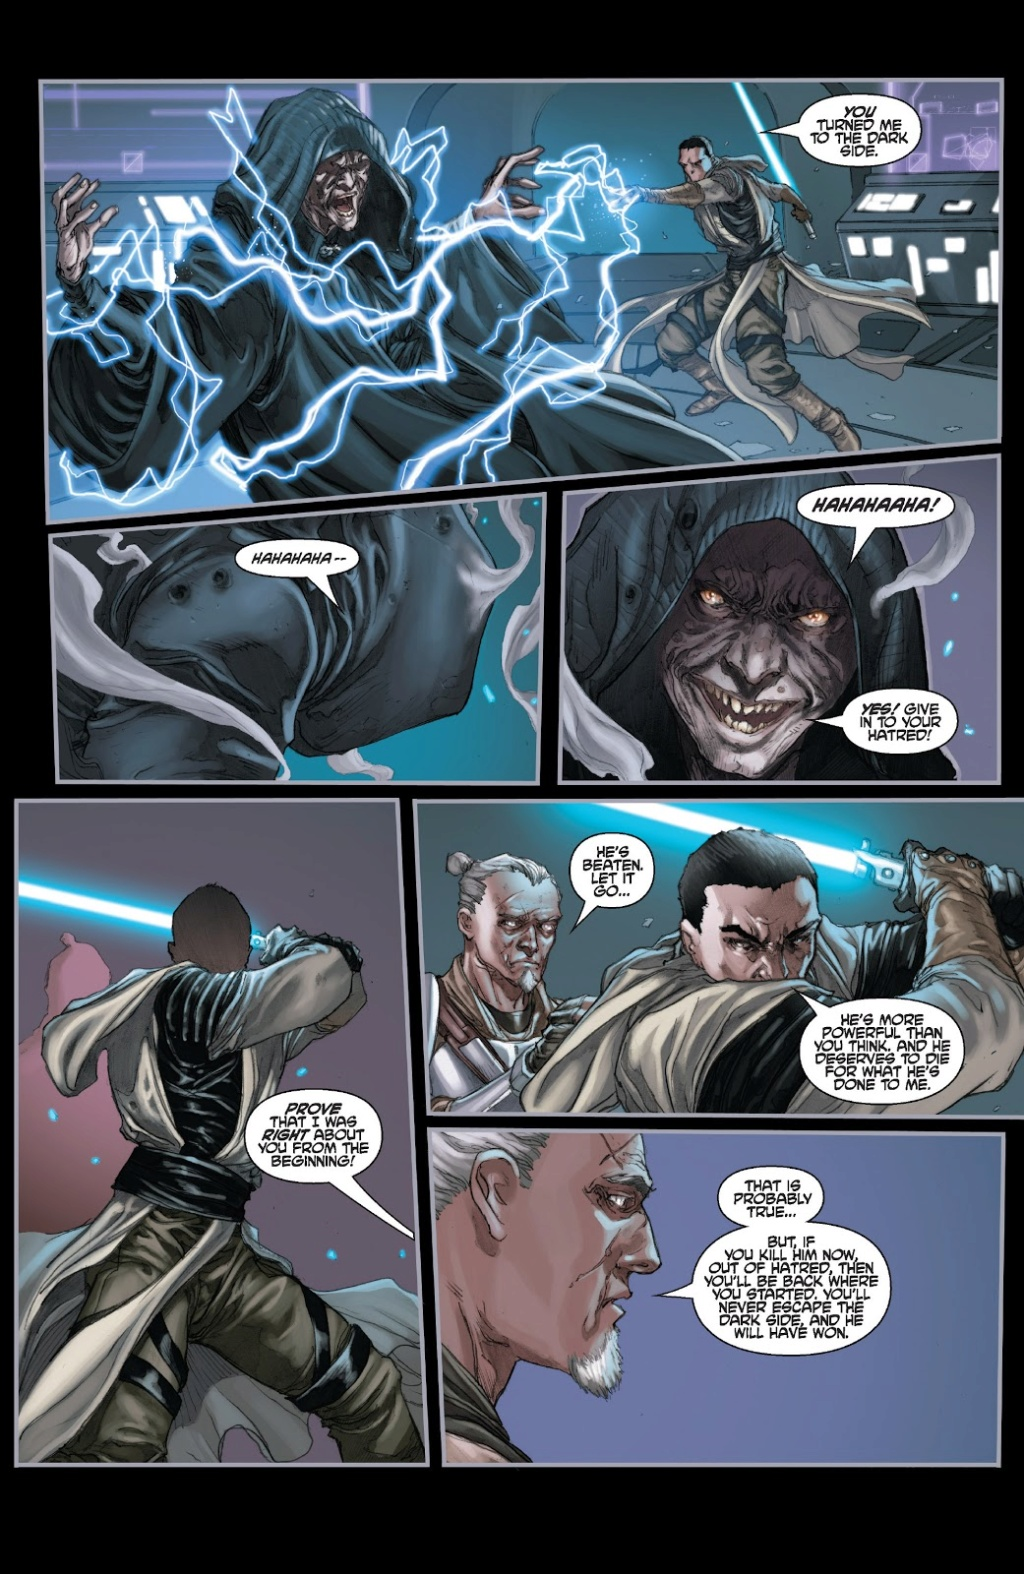 Darth Maul, Count Dooku, Darth Vader, Savage Opress and Galen Marek vs DE Darth Sidious  - Page 3 Rco11510